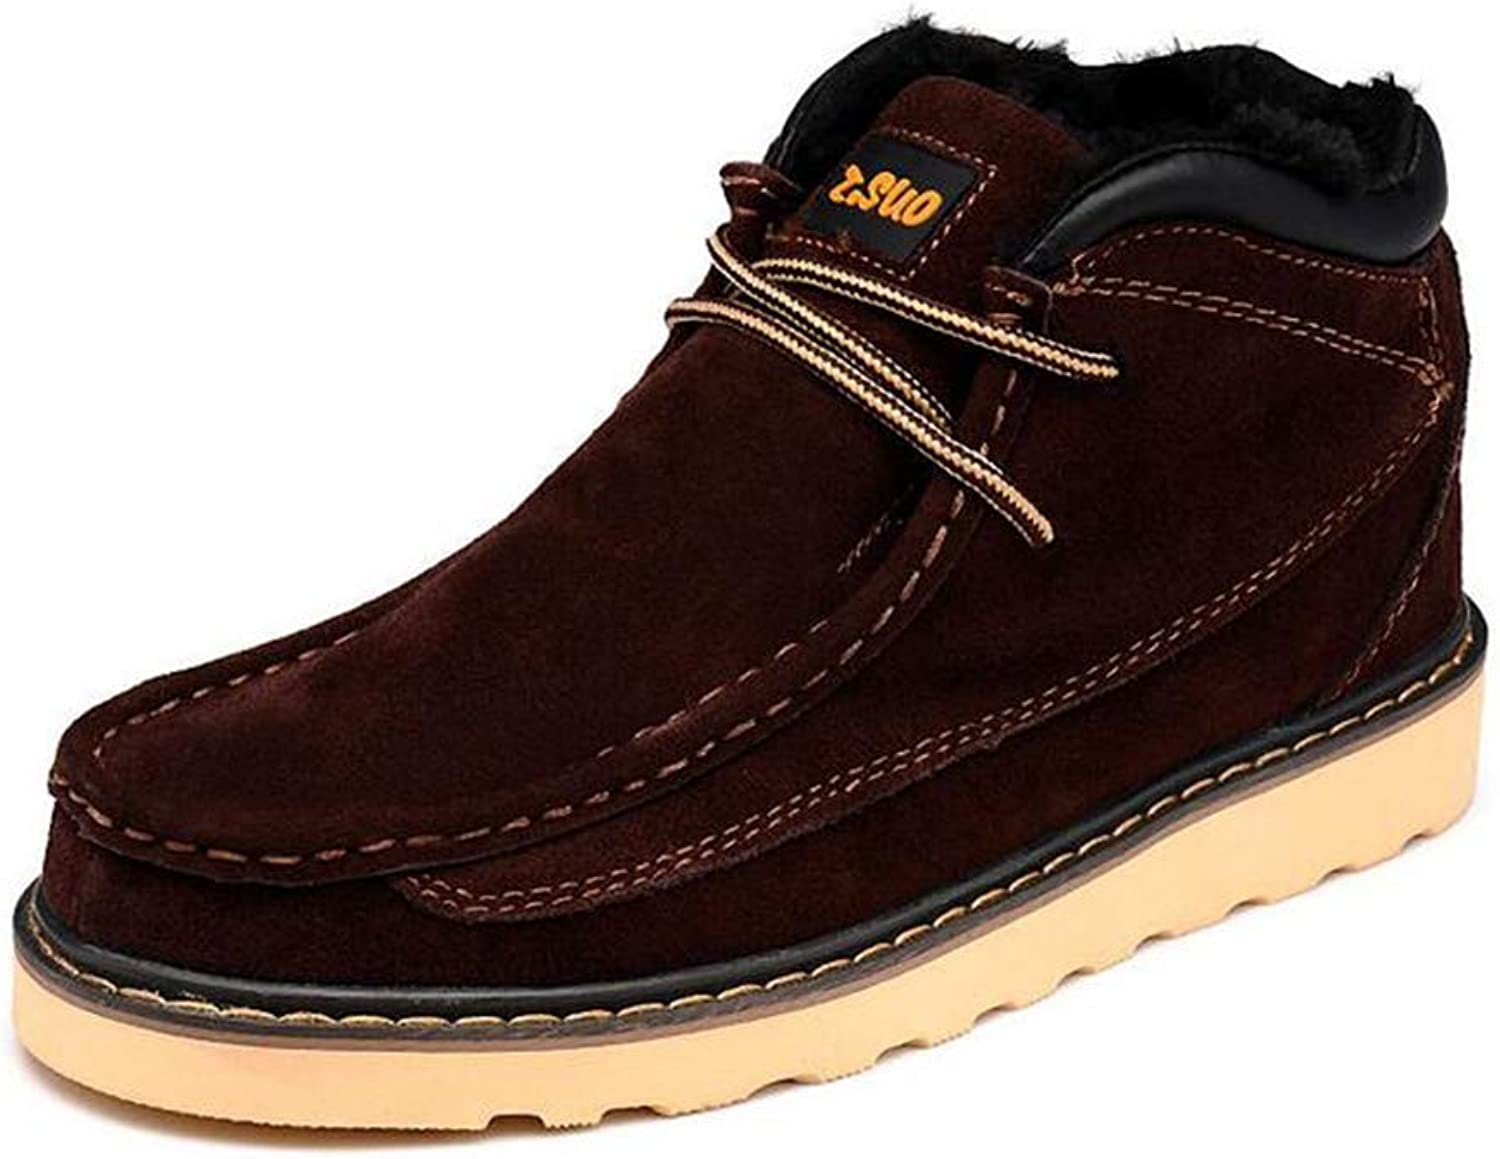 Y-H Men's Casual shoes, Fall Winter Leather Lace-up Martins Boots,Slip-Ons Training shoes, Combat Boots Formal shoes (color   Reddish brown, Size   41)